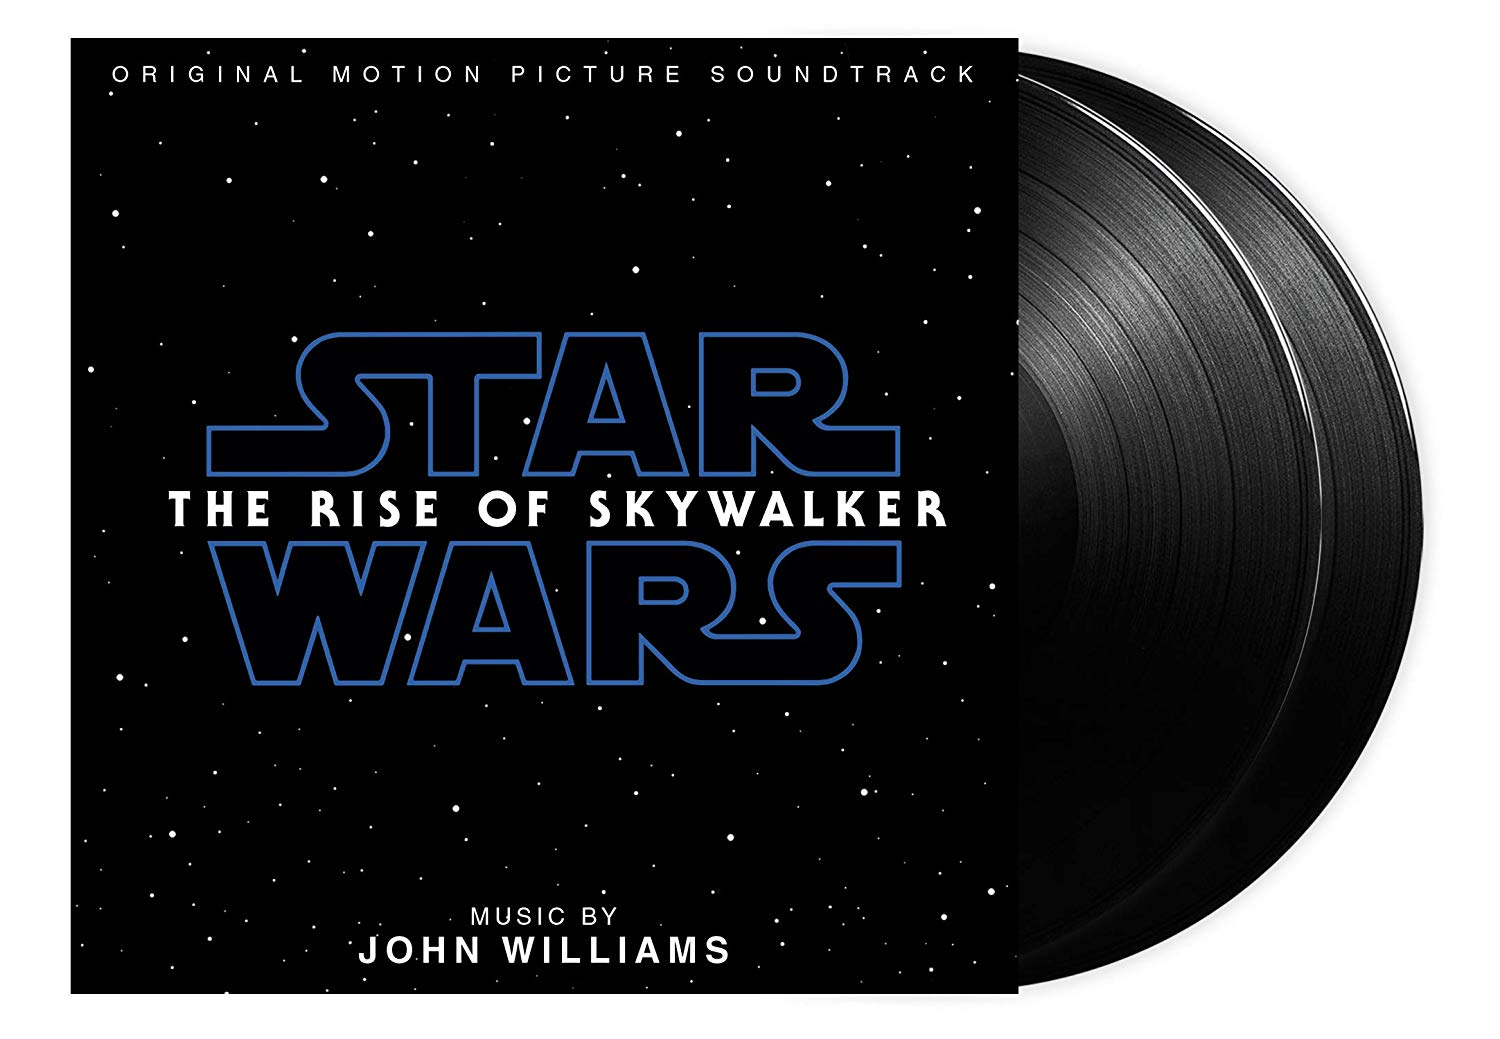 Star Wars: The Rise of Skywalker Original Motion Picture Soundtrack (Record)